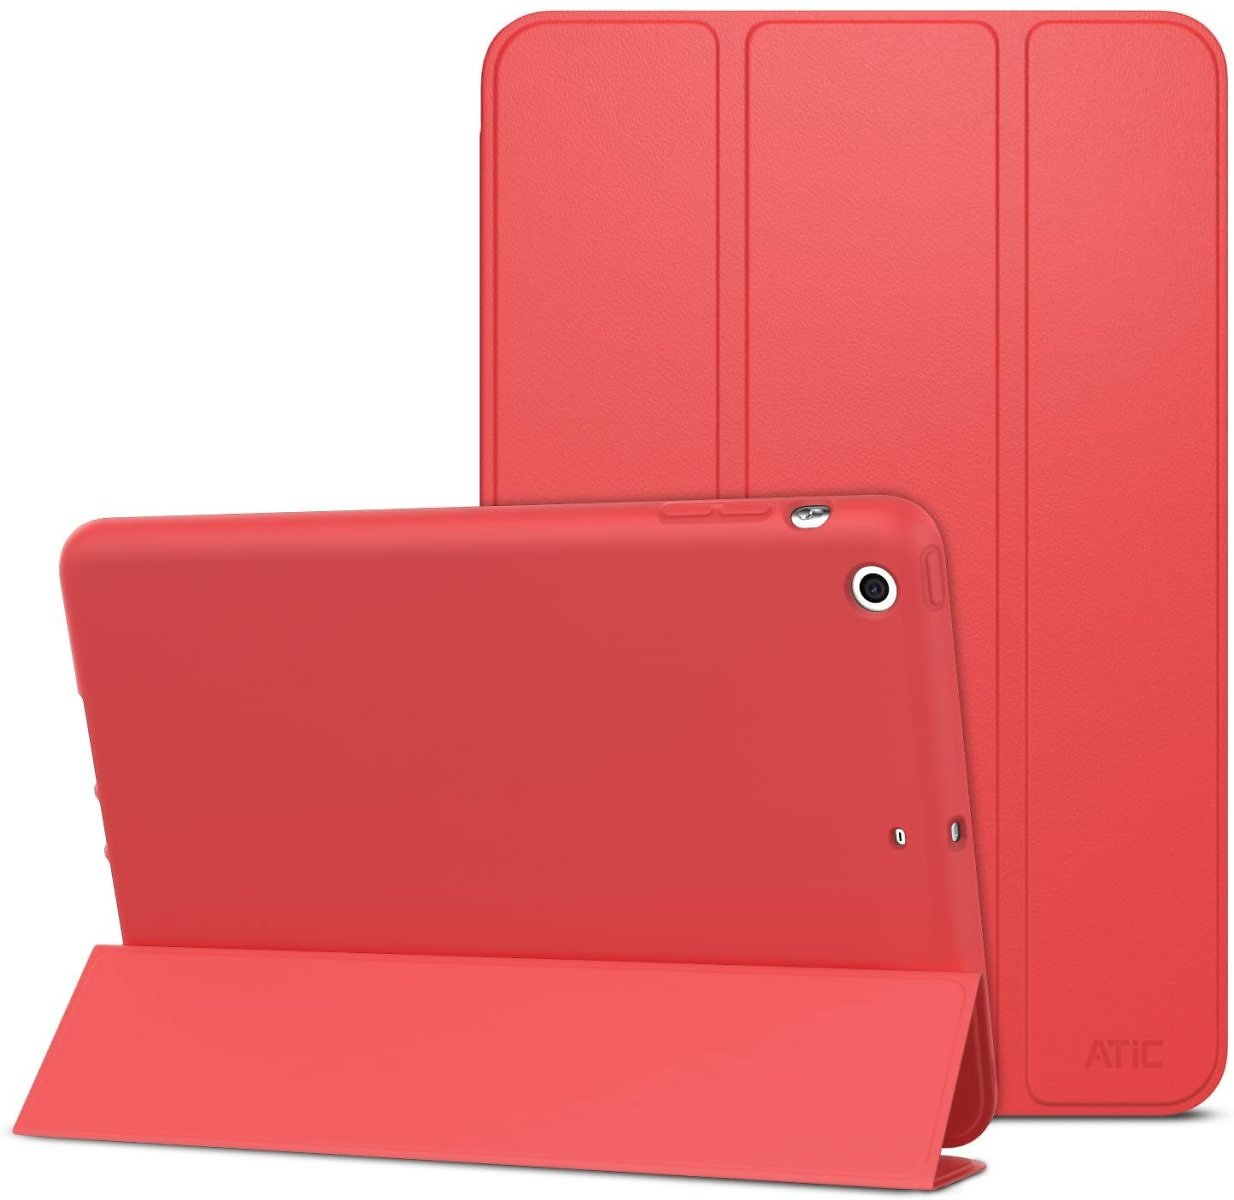 ATiC Case for IPad Mini 3 / 2 / 1, Slim Smart Stand Case with Soft TPU Back Cover Protector for Apple IPad